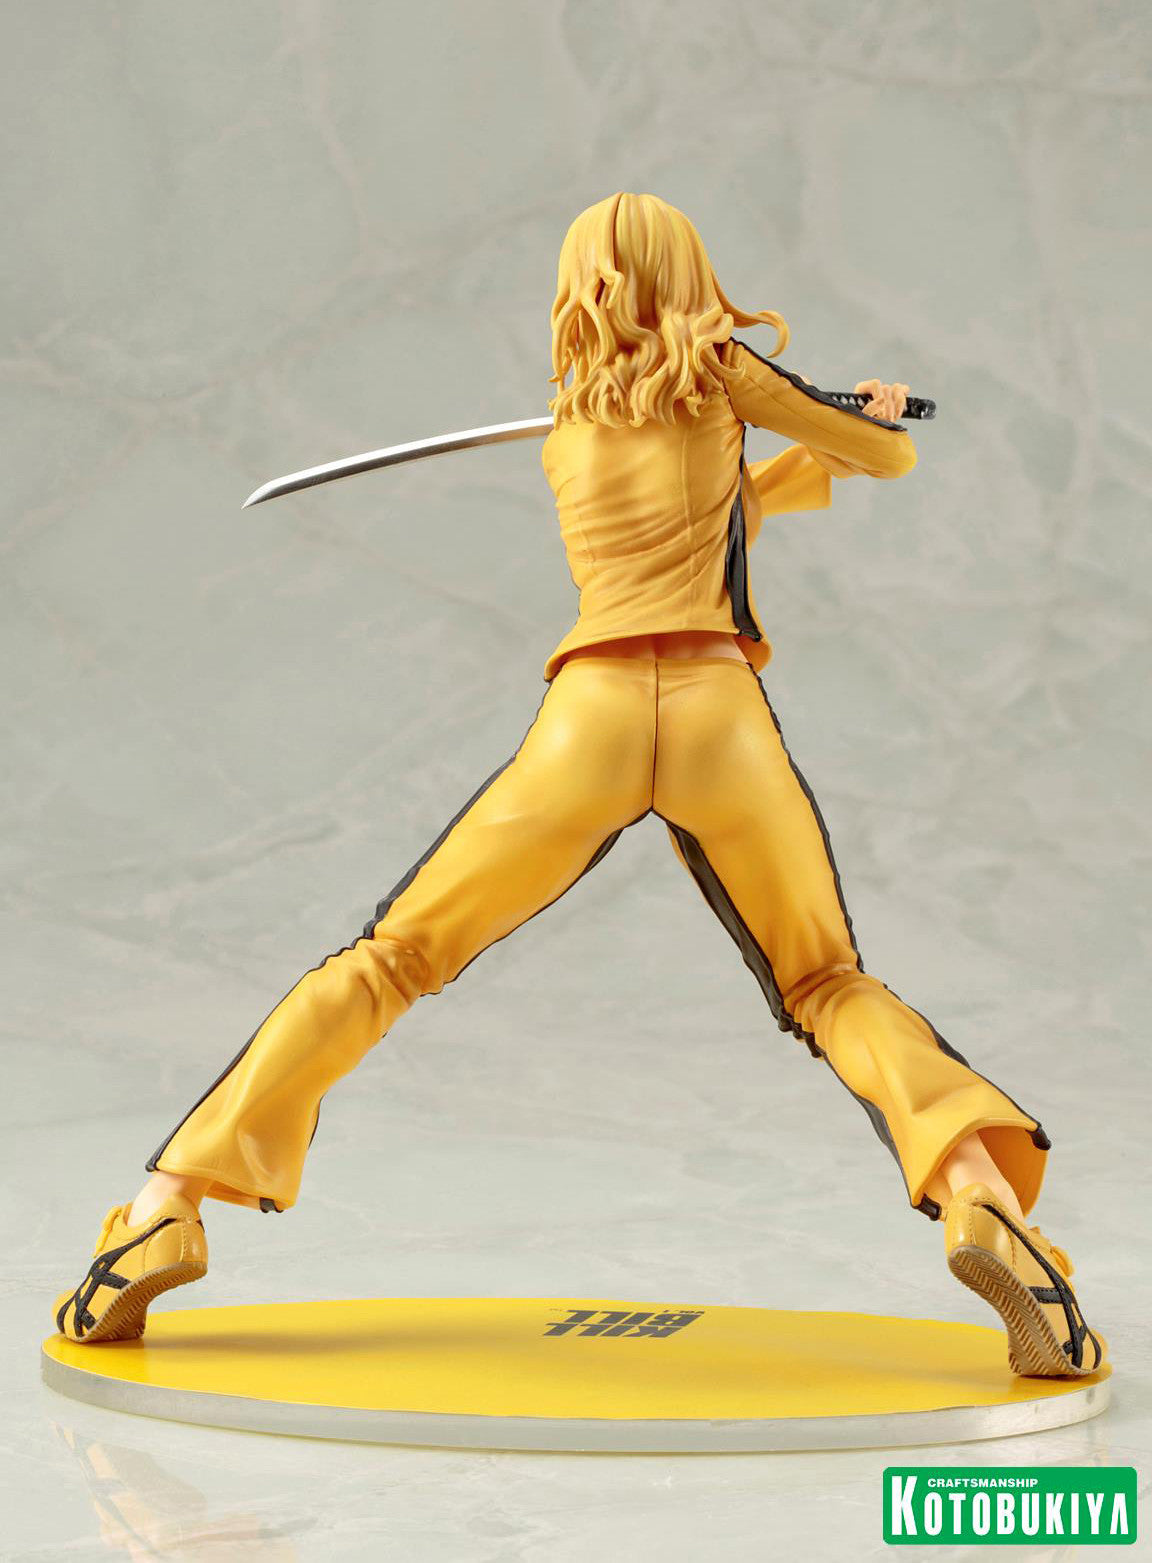 Kotobukiya - Bishoujo - Kill Bill - The Bride (1/7 scale) - Marvelous Toys - 4